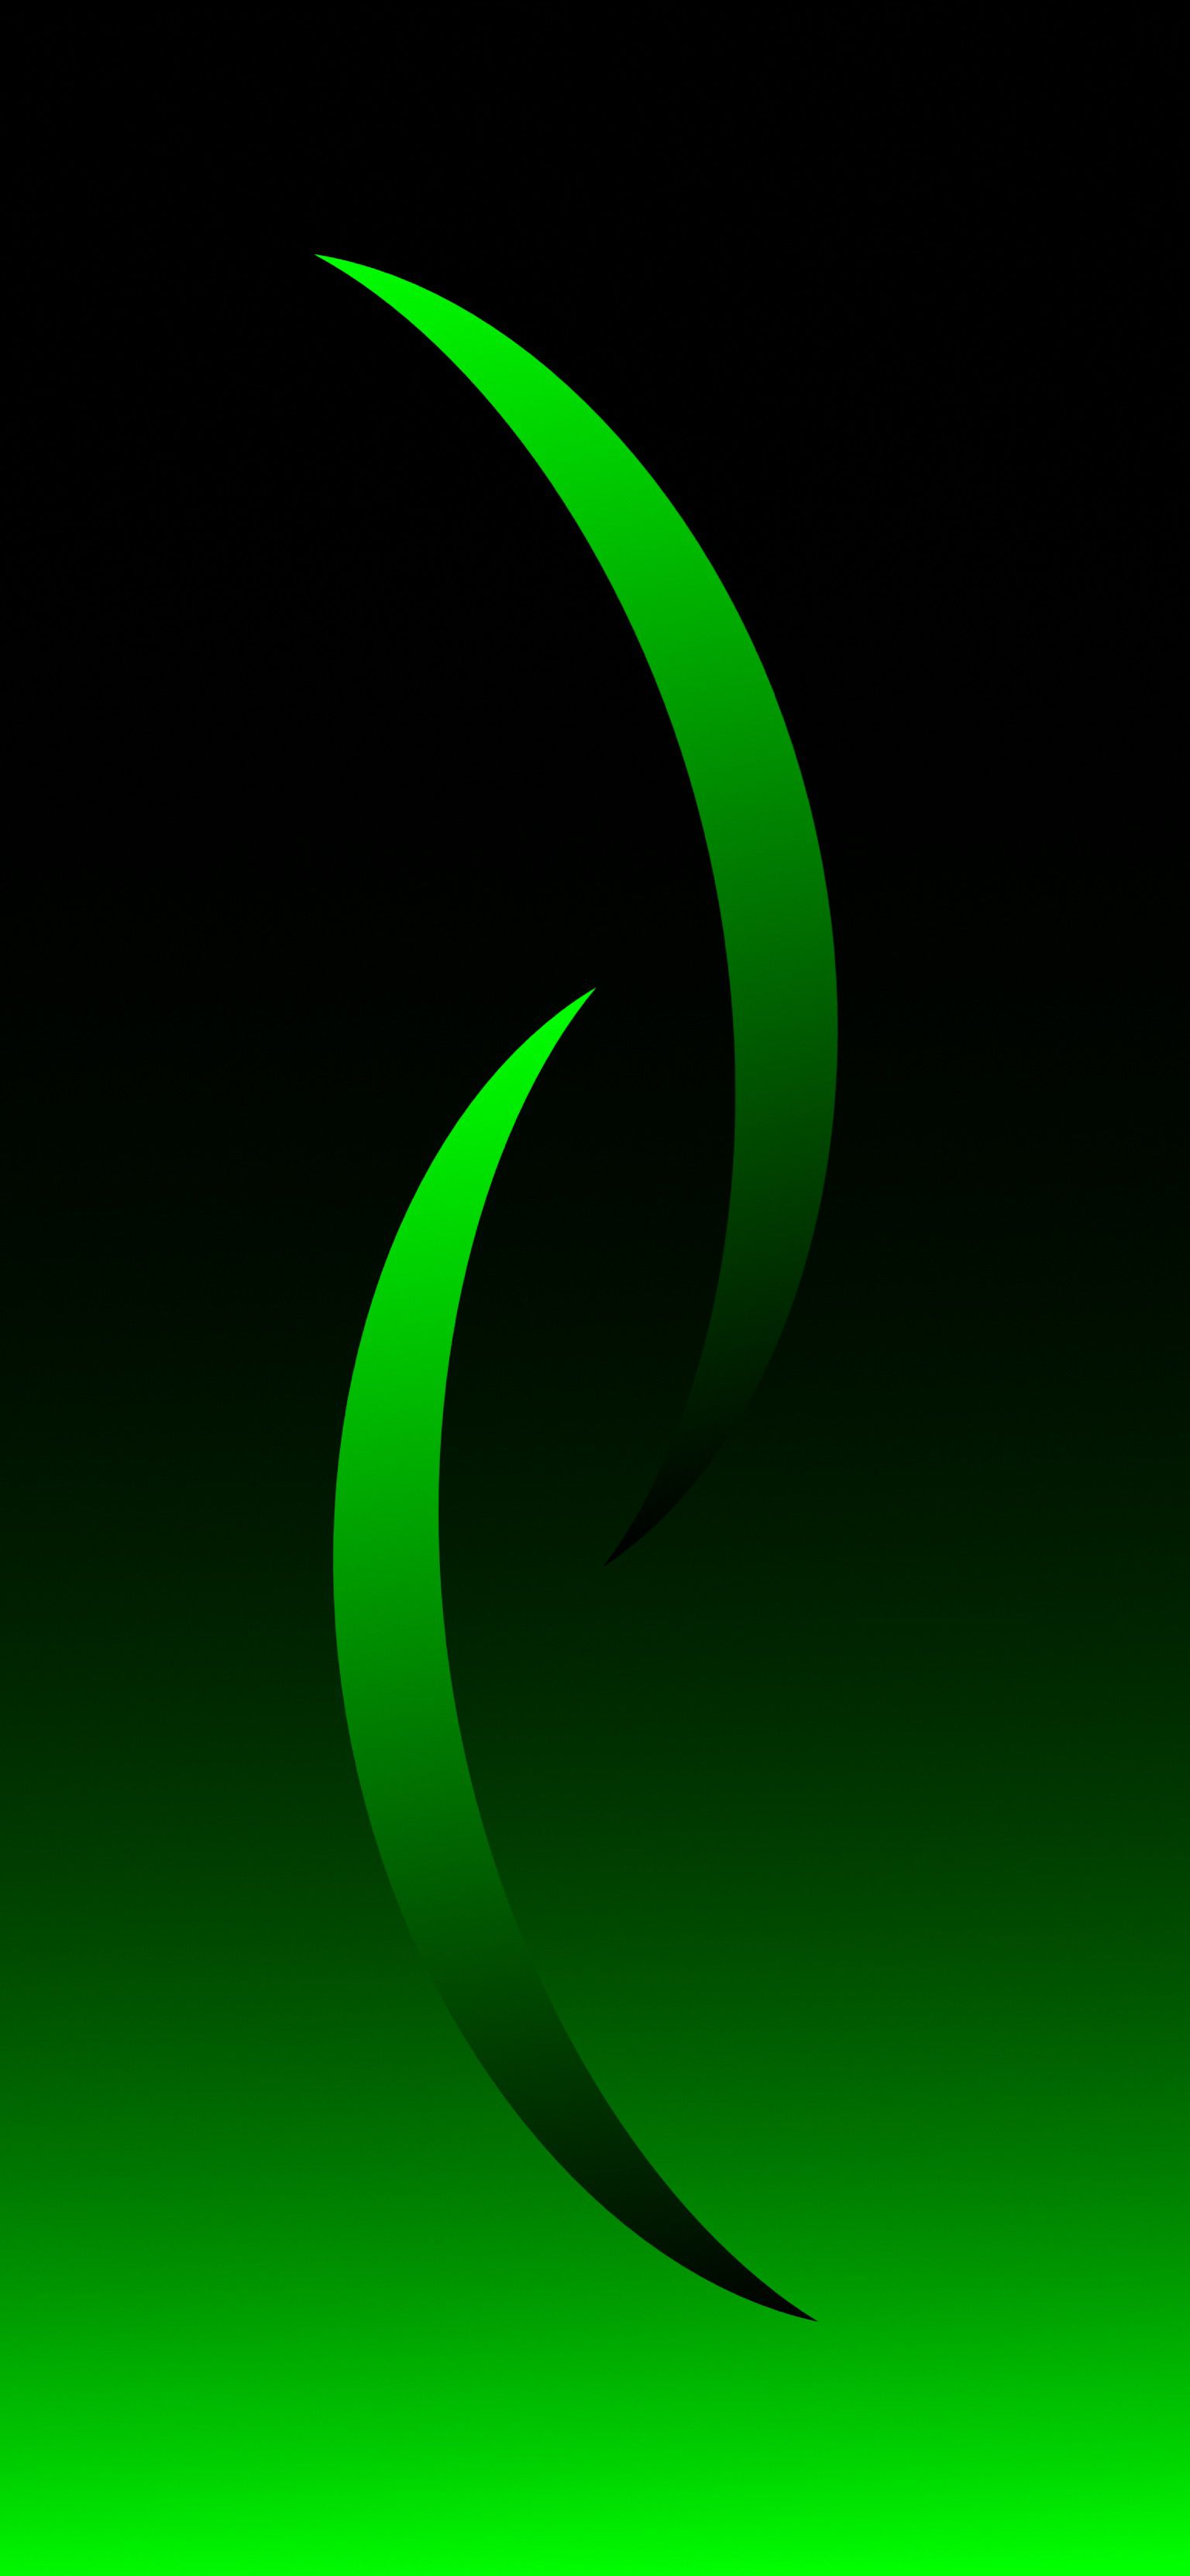 List of Best Green Phone Wallpaper HD Today by hotspot4u.net